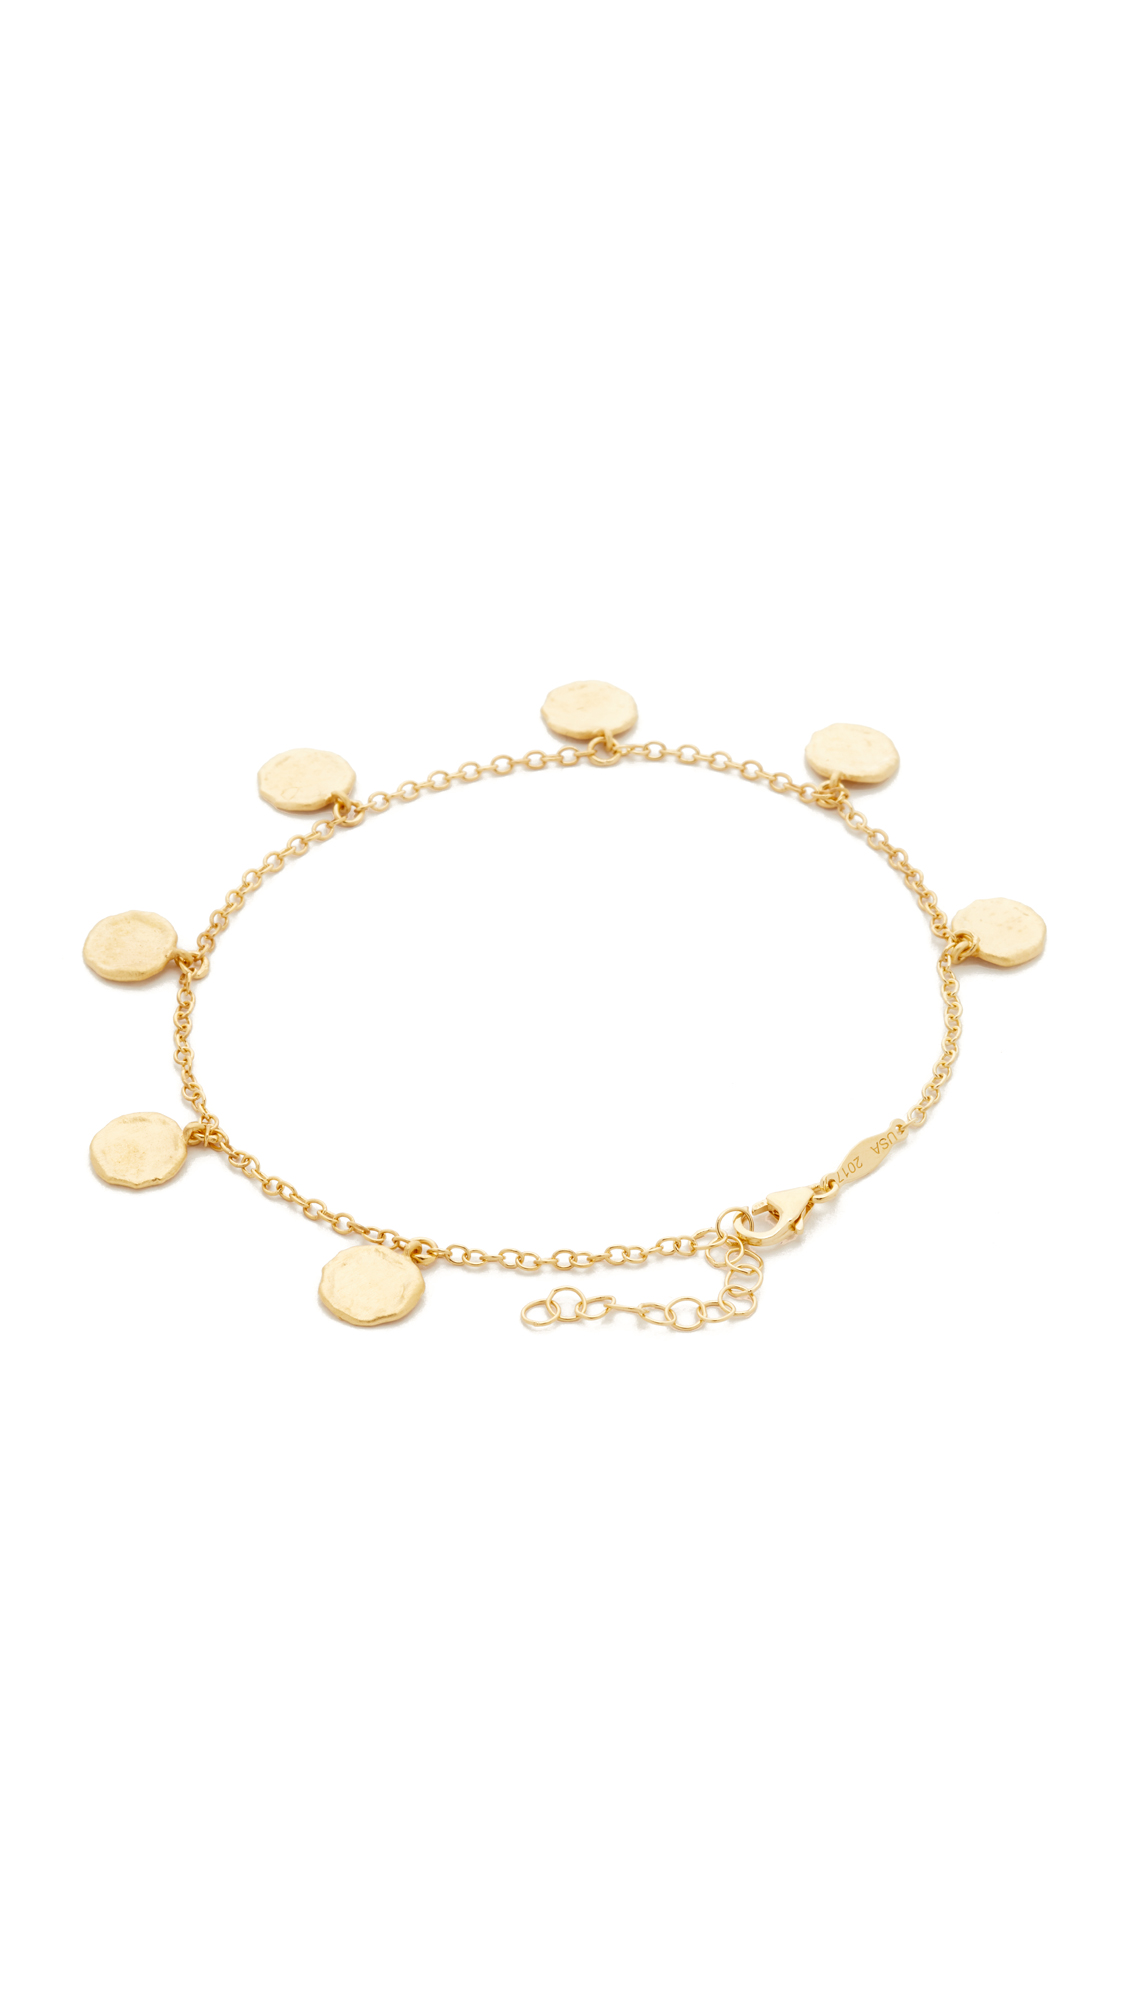 fwrd in jaic diamond product necklace aiche anklet fuck of yellow jacquie image gold